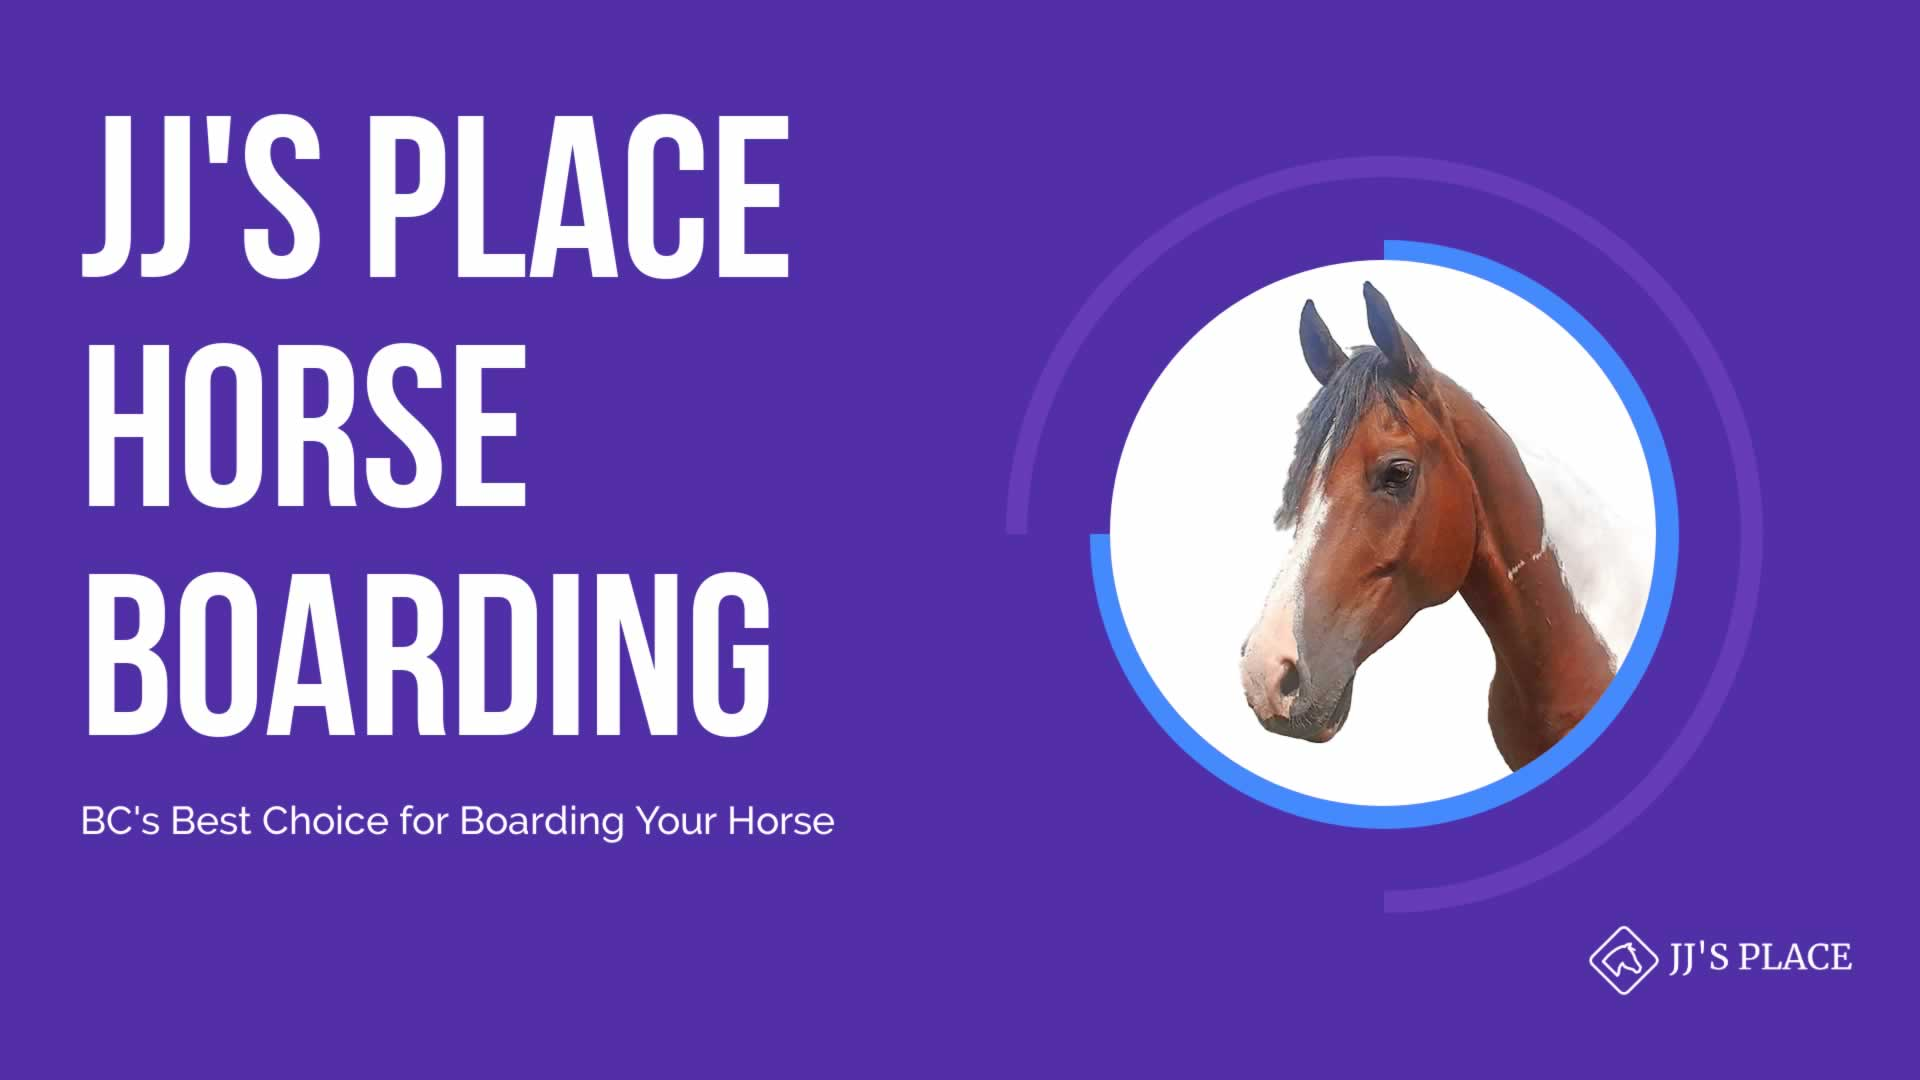 JJ's Place Horse Boarding